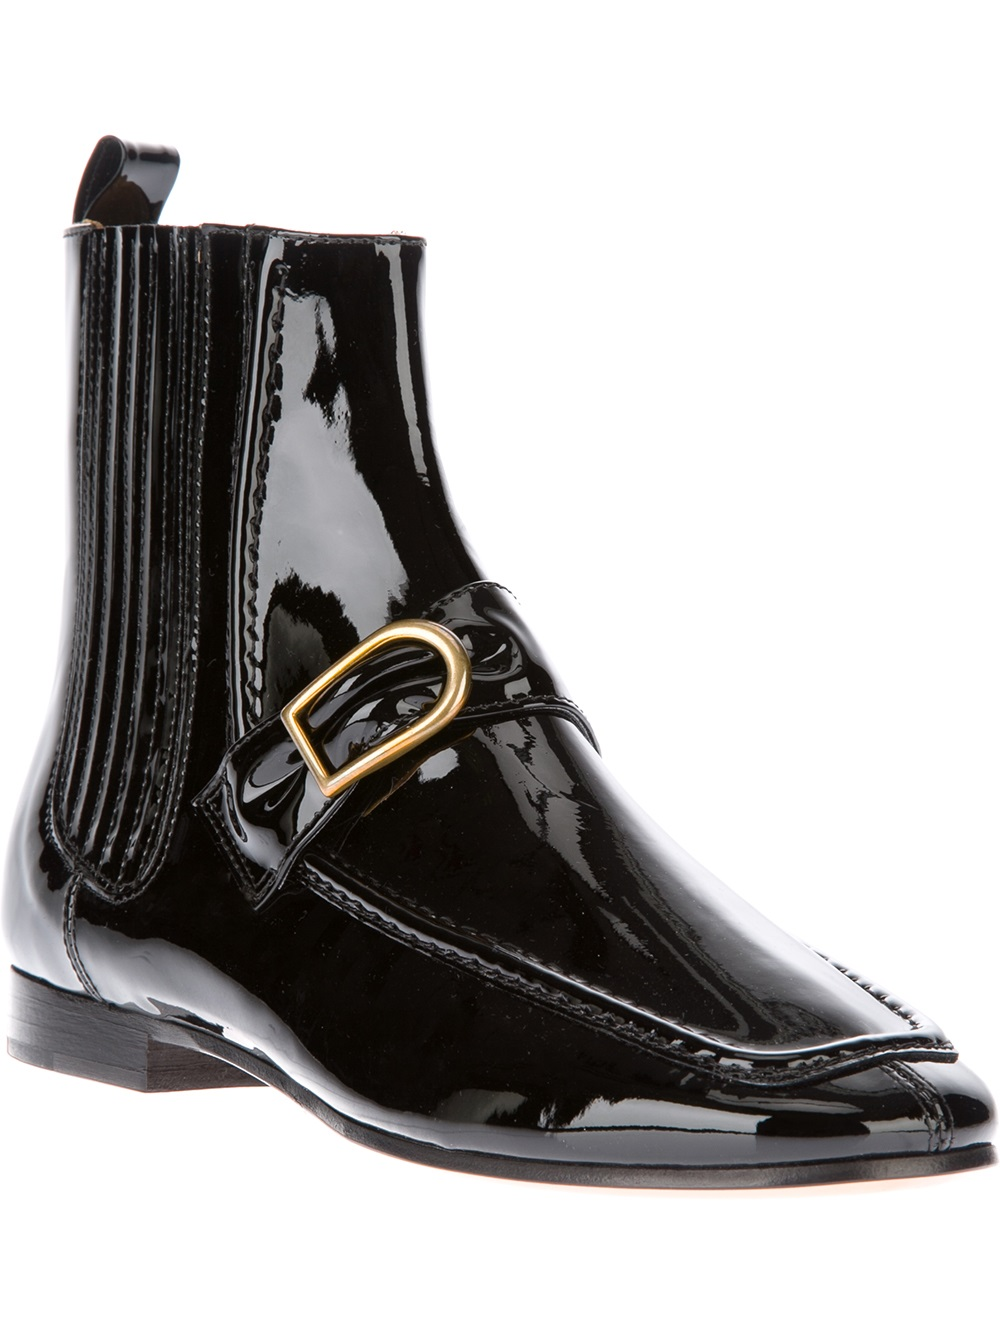 Creative Glistening With A Highshine Finish, This Goto Chelsea Boot Ties Any Look Together With A Stylish Touch Of Classic Cool Elastic Goring On The Sides Help Ease Them On And Keep Things Comfortable At The Ankles Just Add Denim